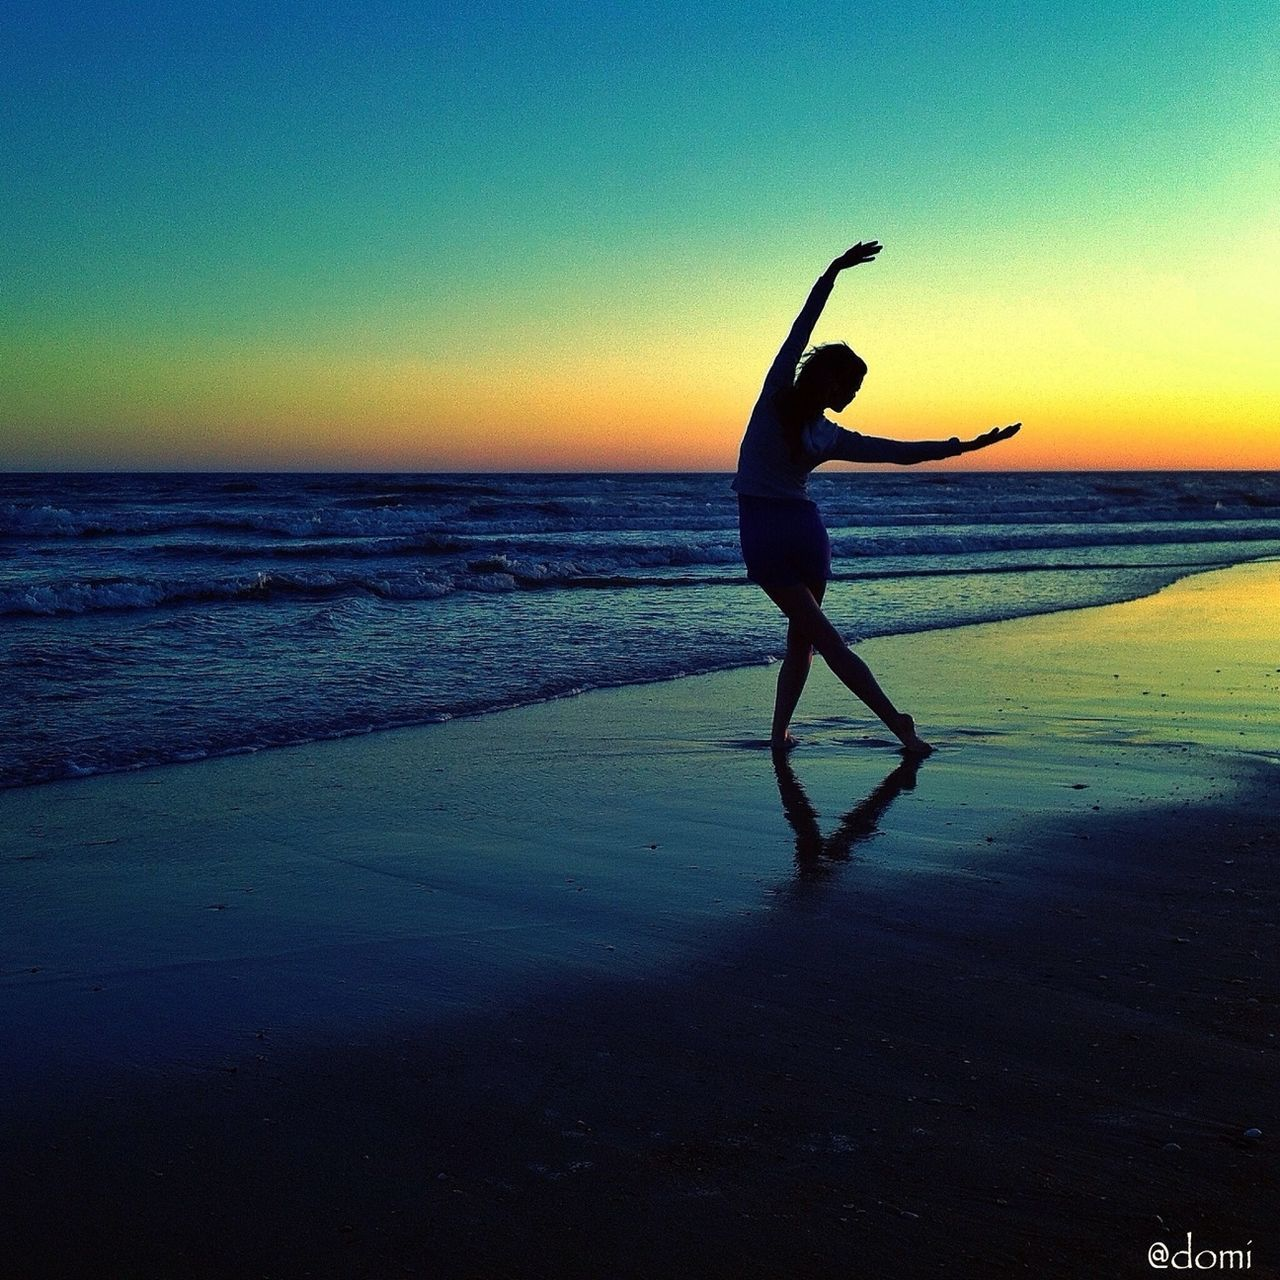 sea, beach, water, shore, sunset, horizon over water, full length, real people, balance, one person, sand, leisure activity, scenics, skill, silhouette, lifestyles, nature, beauty in nature, standing, outdoors, flexibility, sky, energetic, day, people